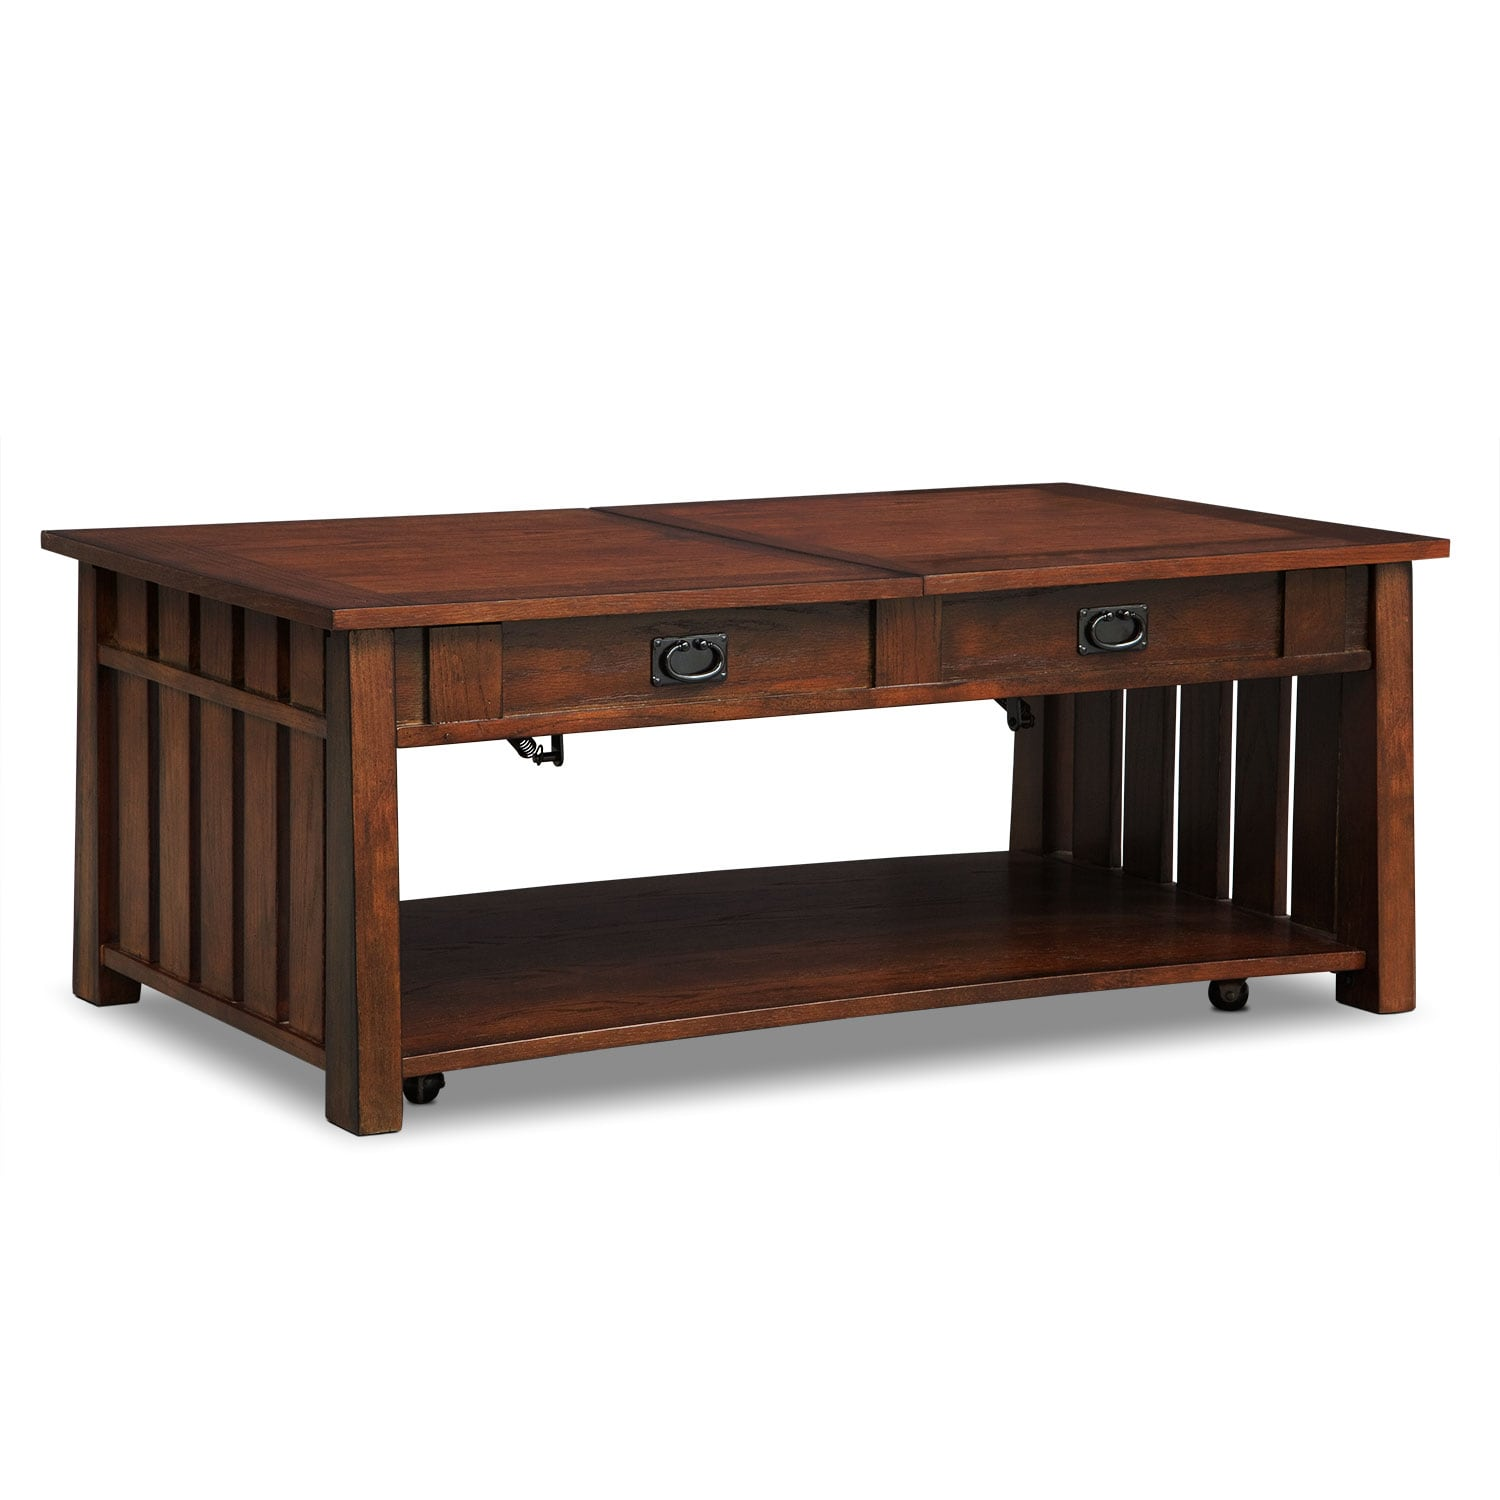 Dual Lift Top Coffee Table Tribute Lift Top Cocktail Table Cherry American Signature